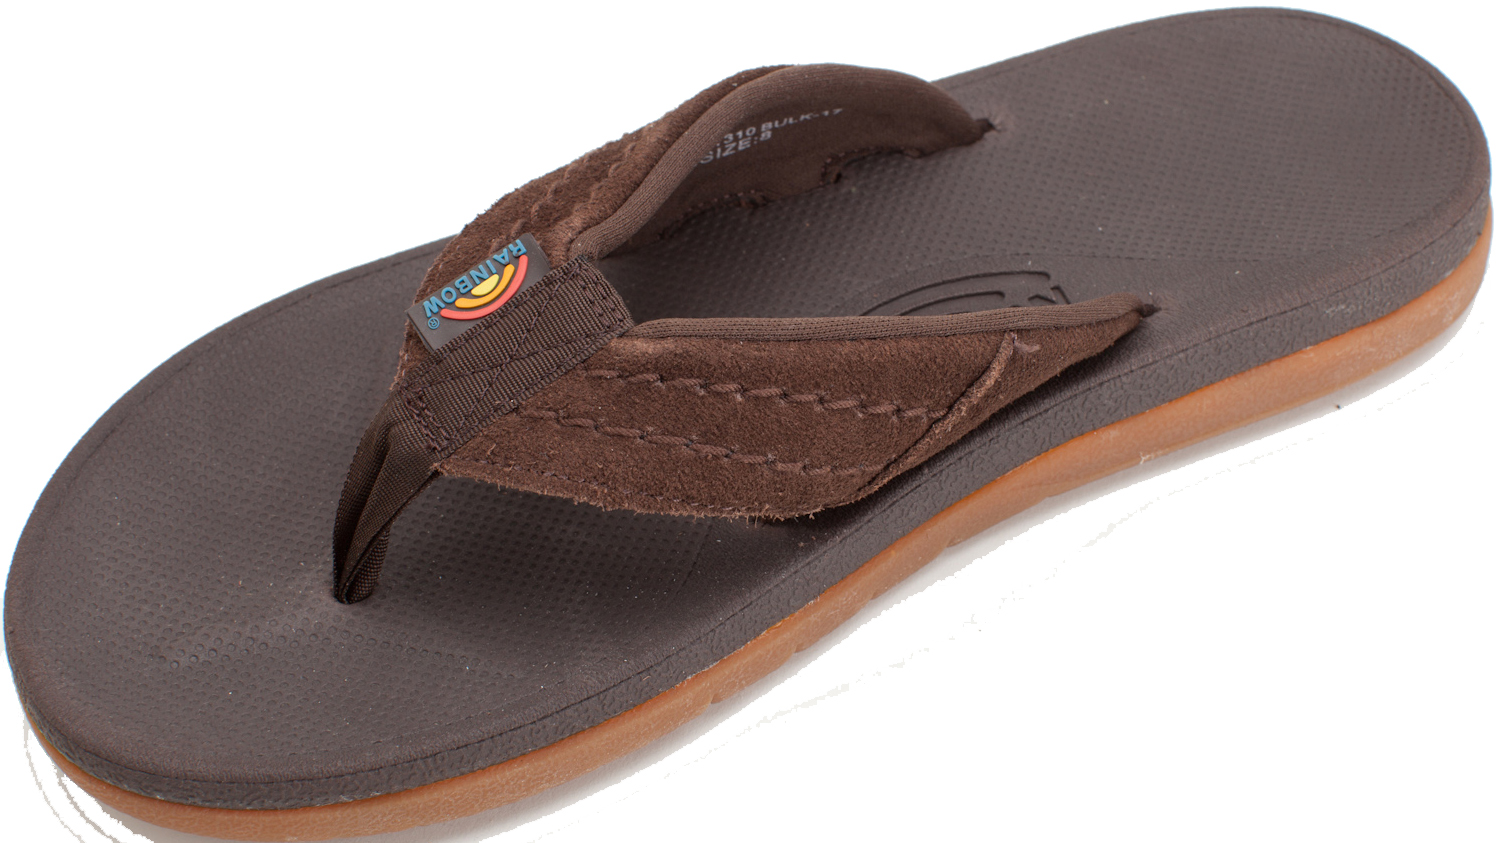 09f7496be2ef Uk12 Dark Brown. About this product. Rainbow East Cape Men s Molded Rubber  Suede Strap Flip Flops. New  Picture 2 of 3 ...